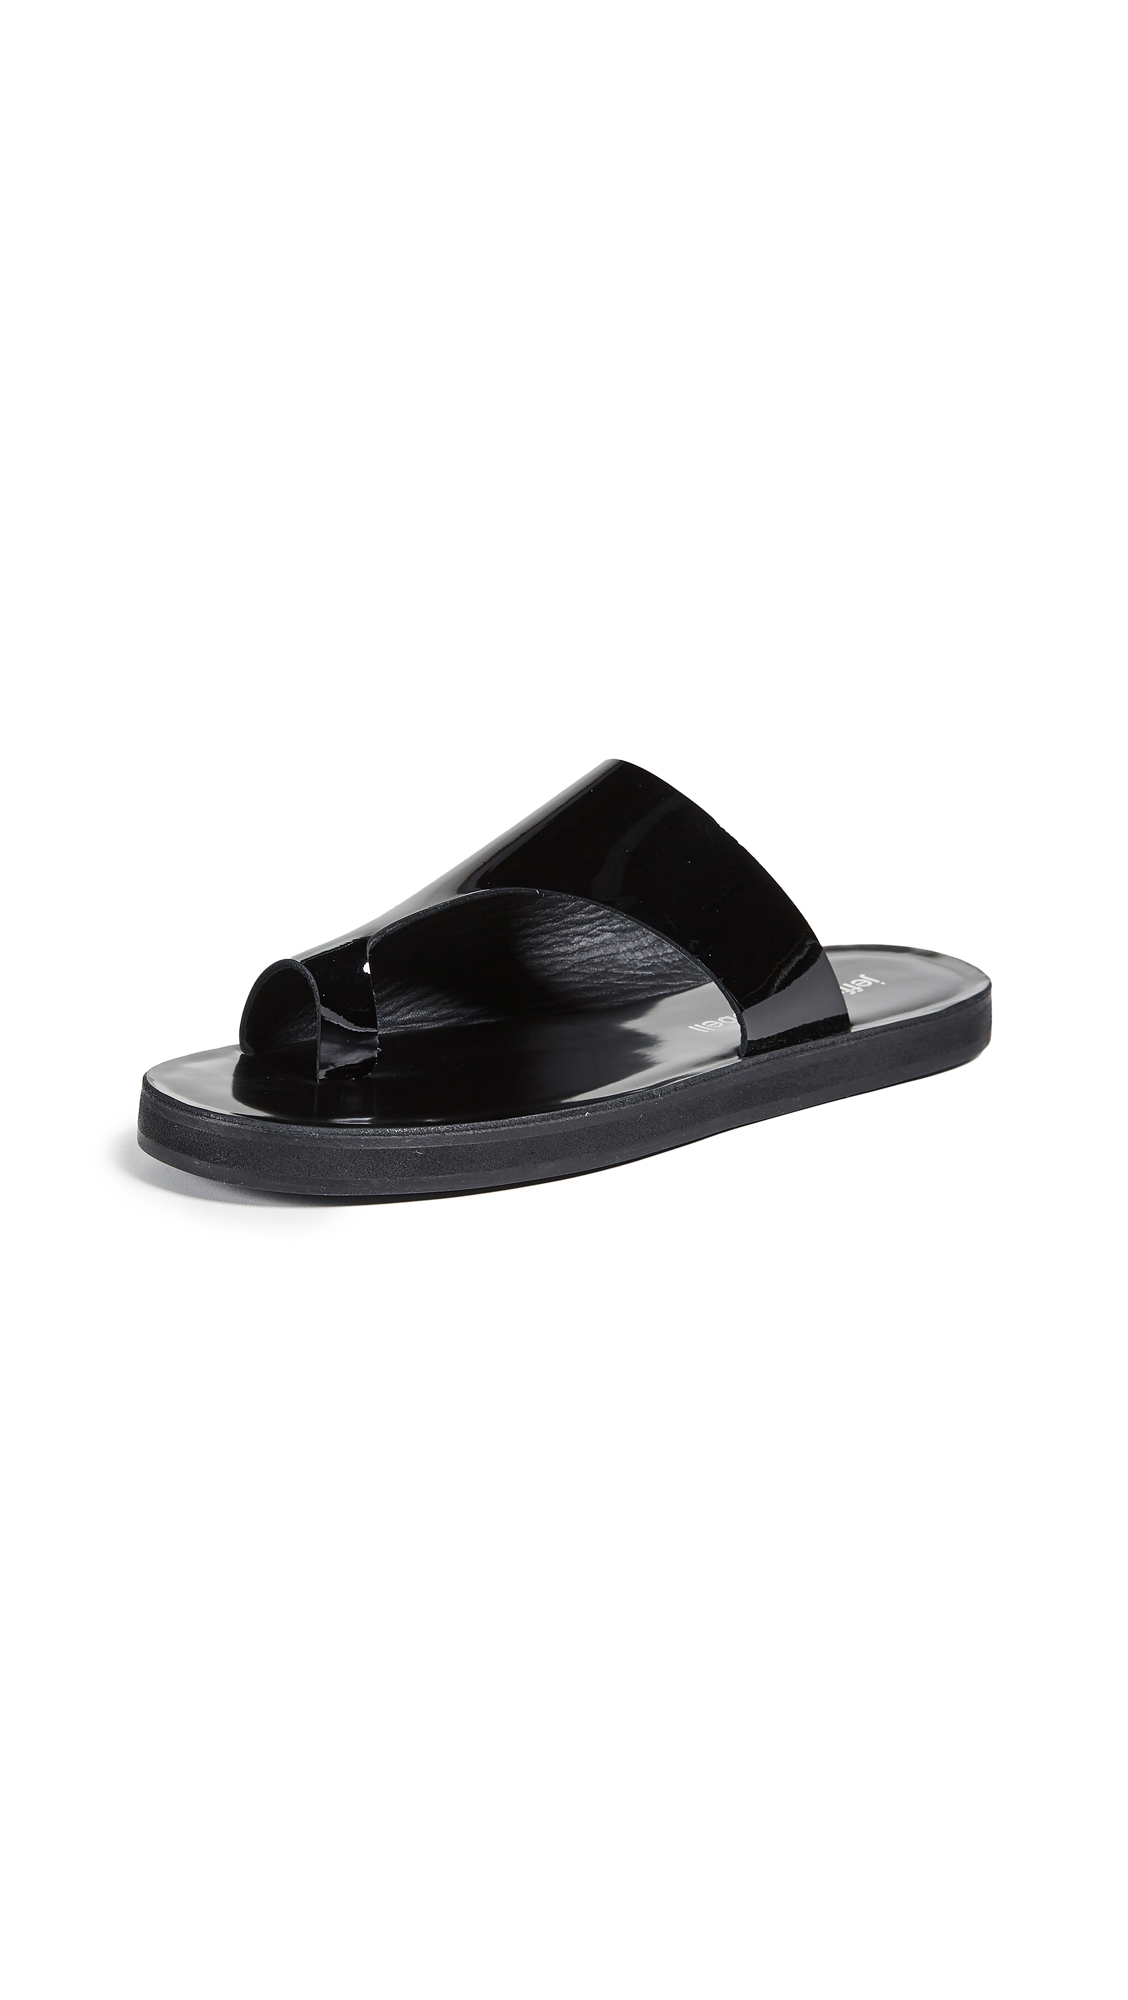 Jeffrey Campbell Morado Asymmetrical Slides - Black